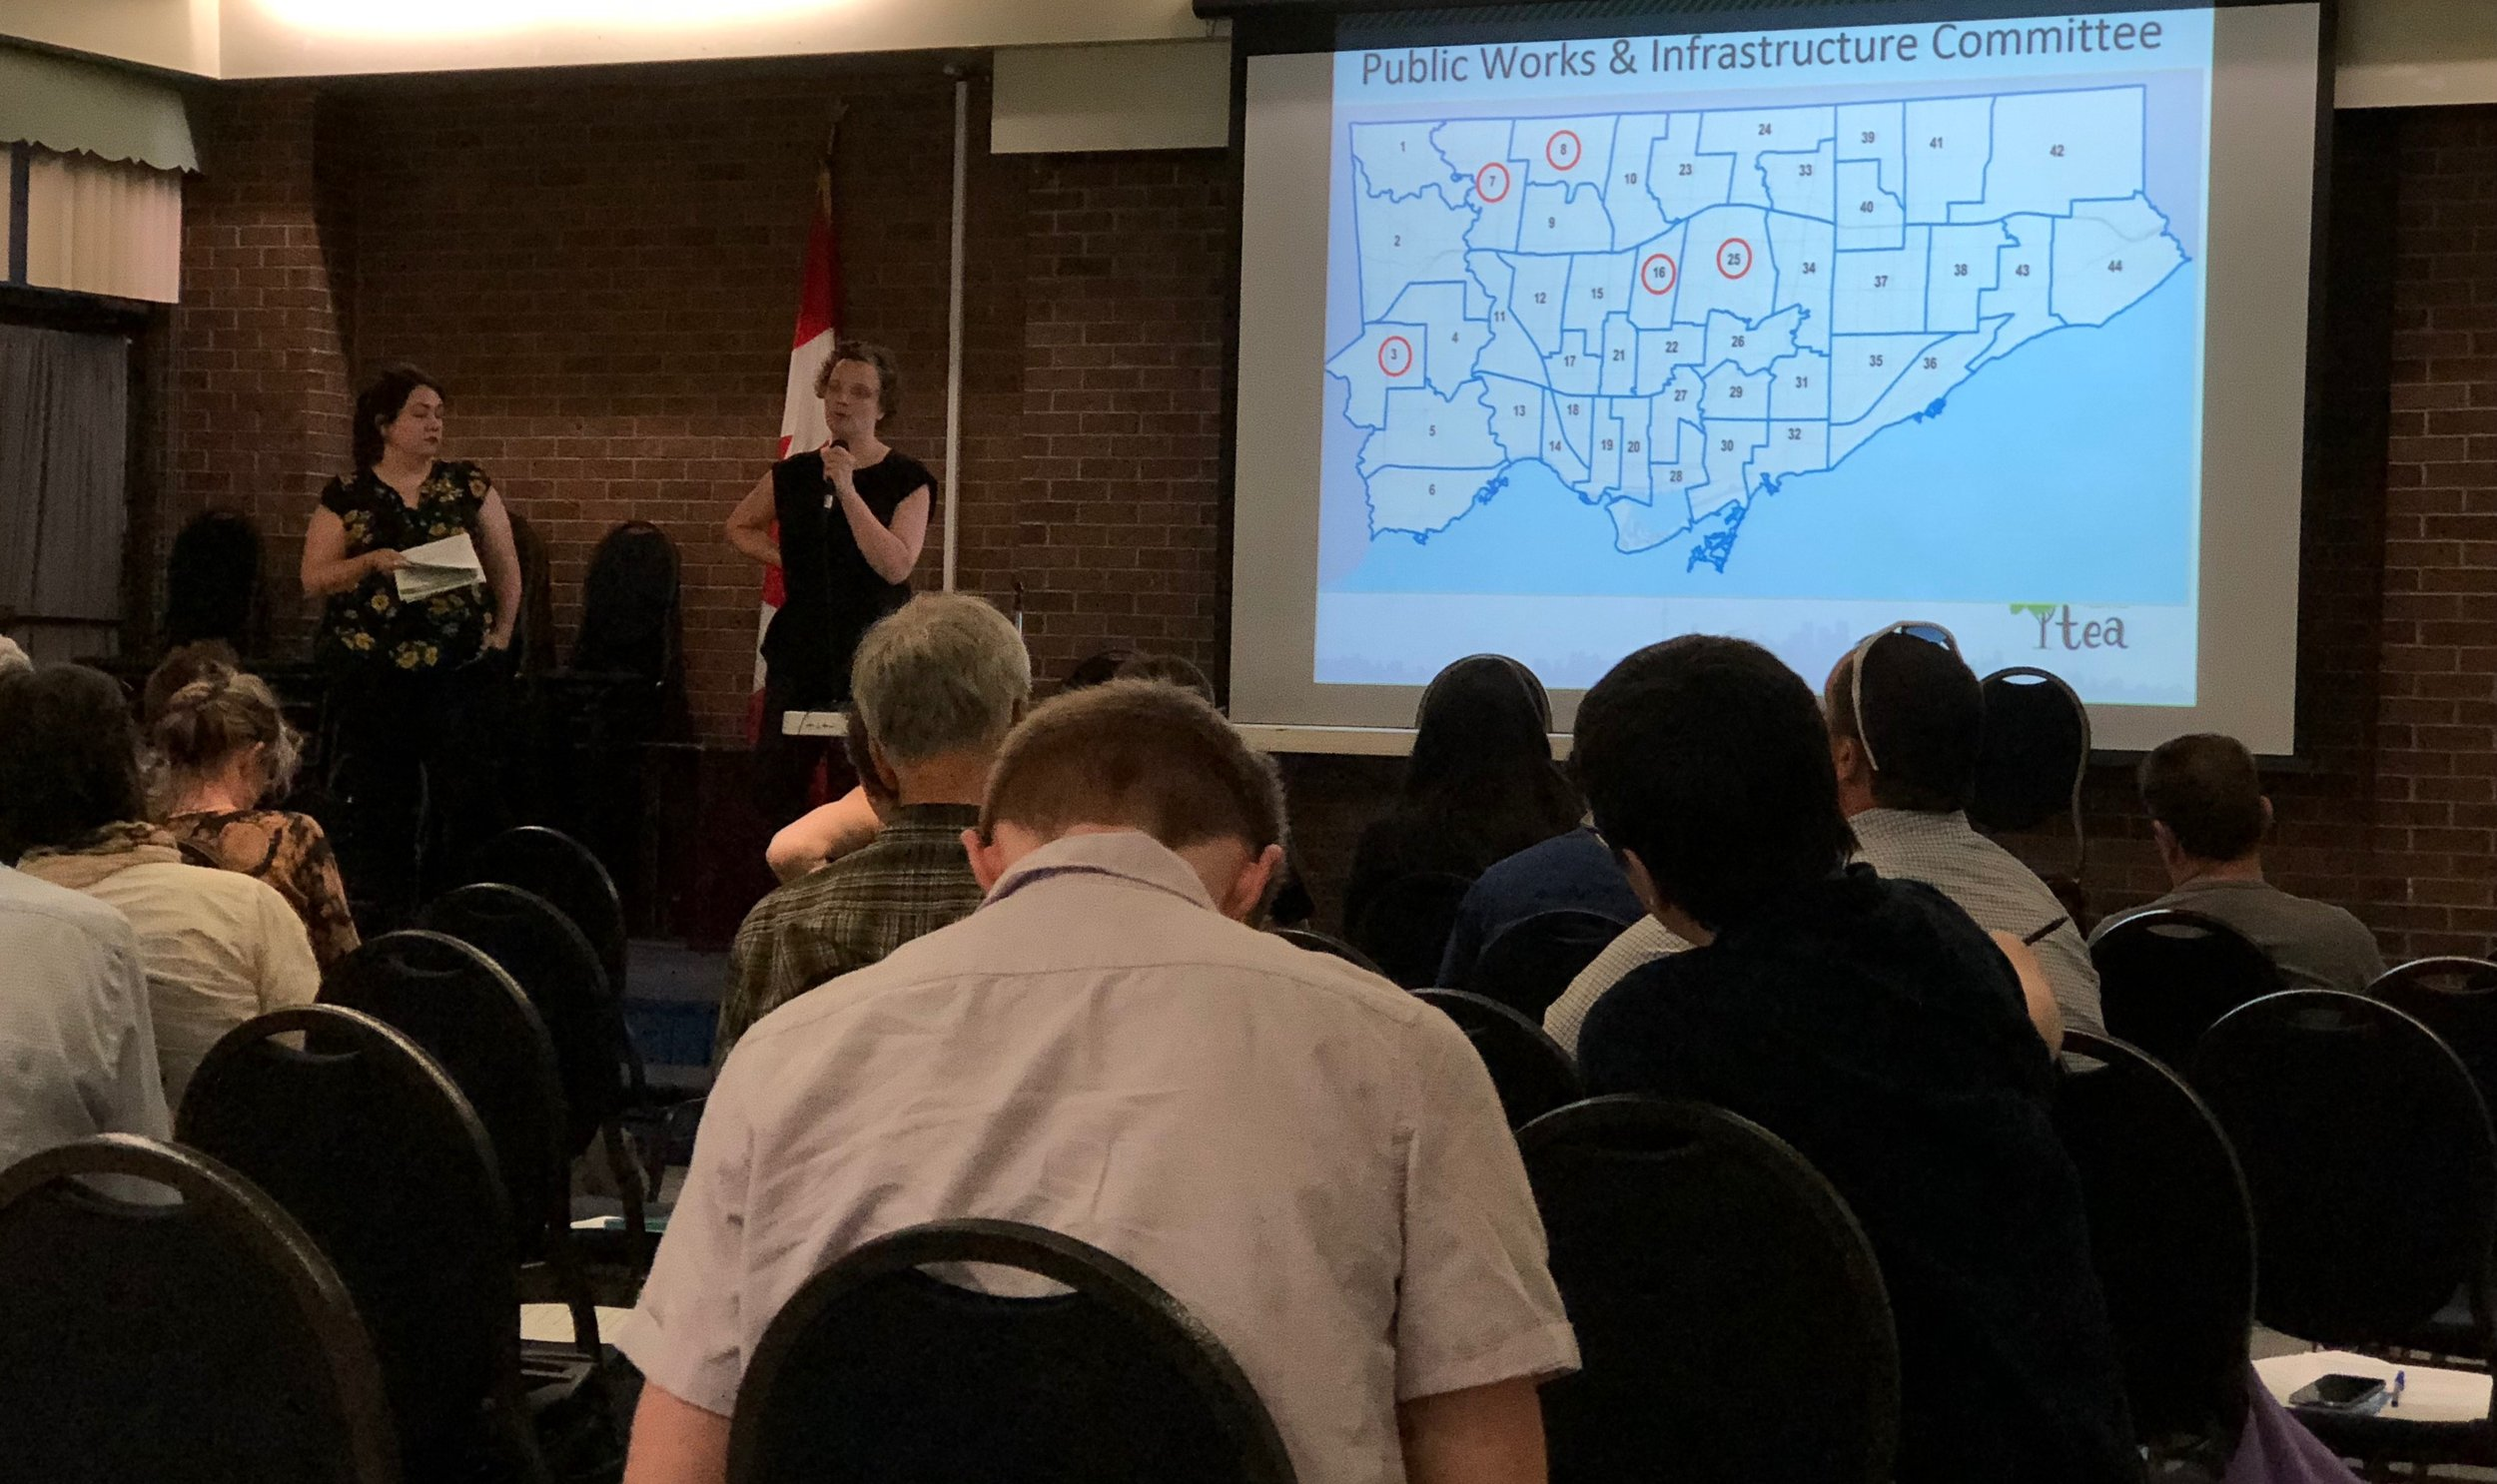 A map showing where the   the Public Works and Infrastructure Committee (PWIC)   councillors are located in Toronto, from TEA's Zero Waste Plastic Advocacy Training Session